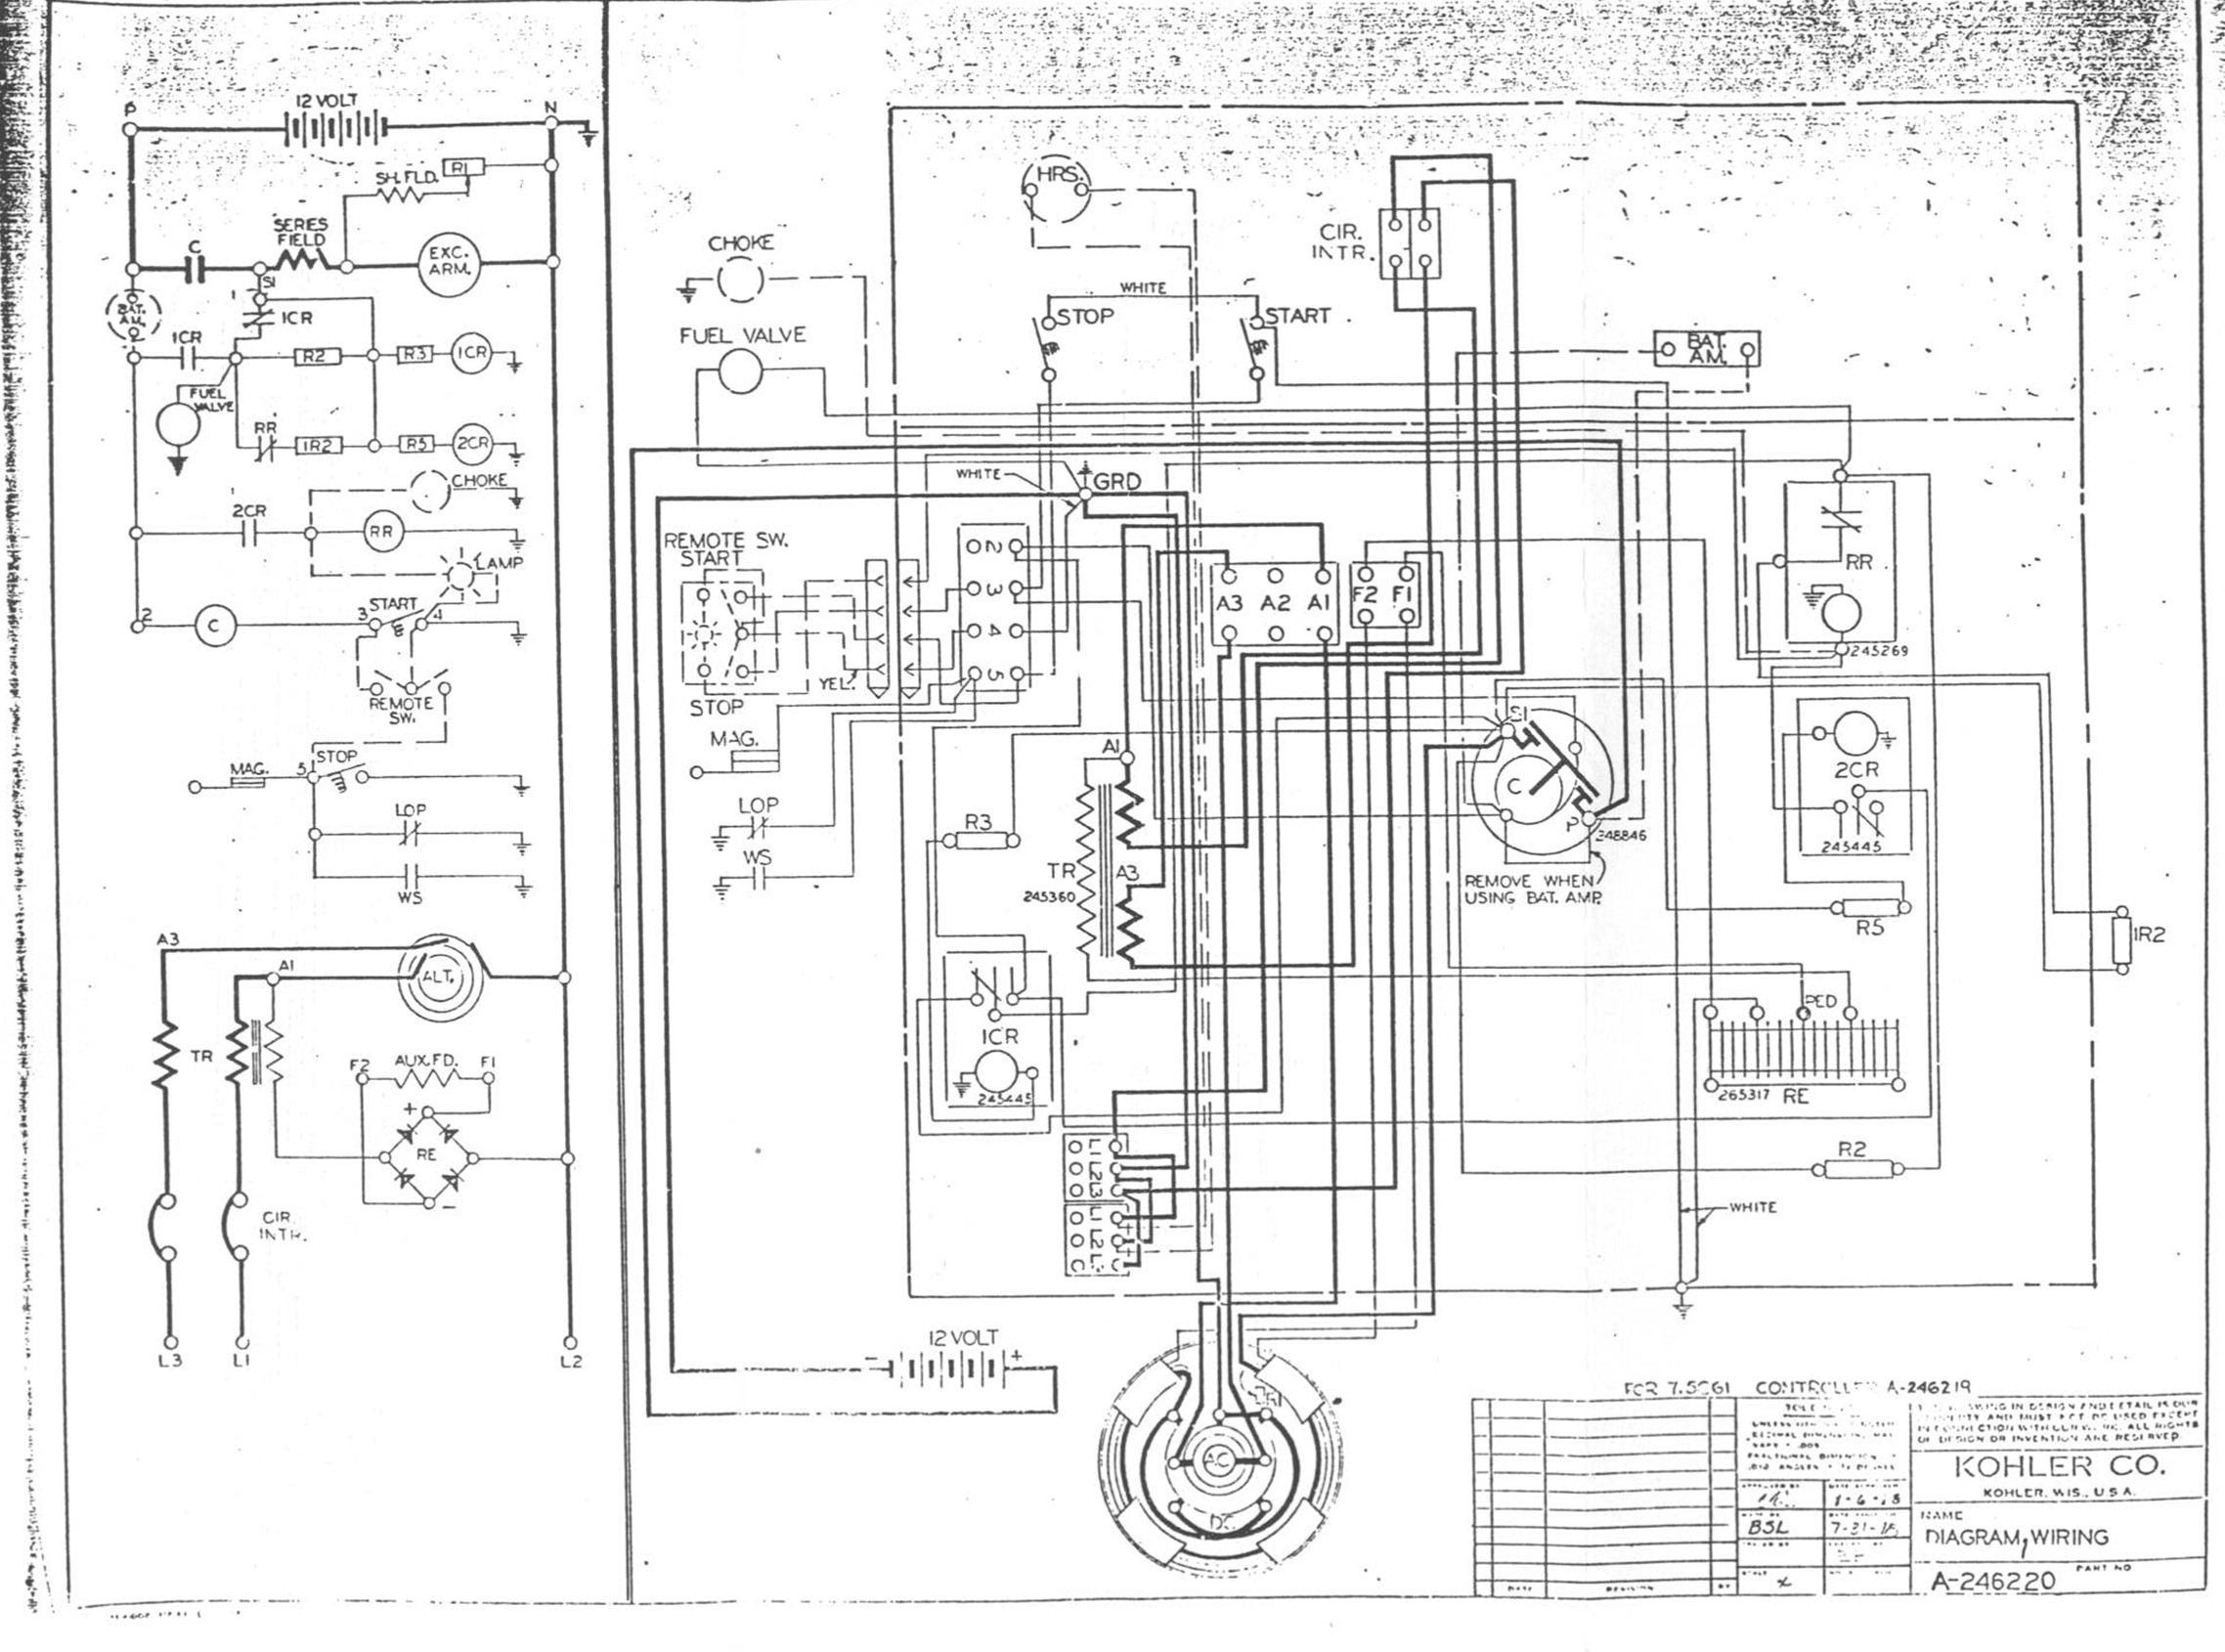 perkins genset engine kohler manuals and information kohler drawing jpg